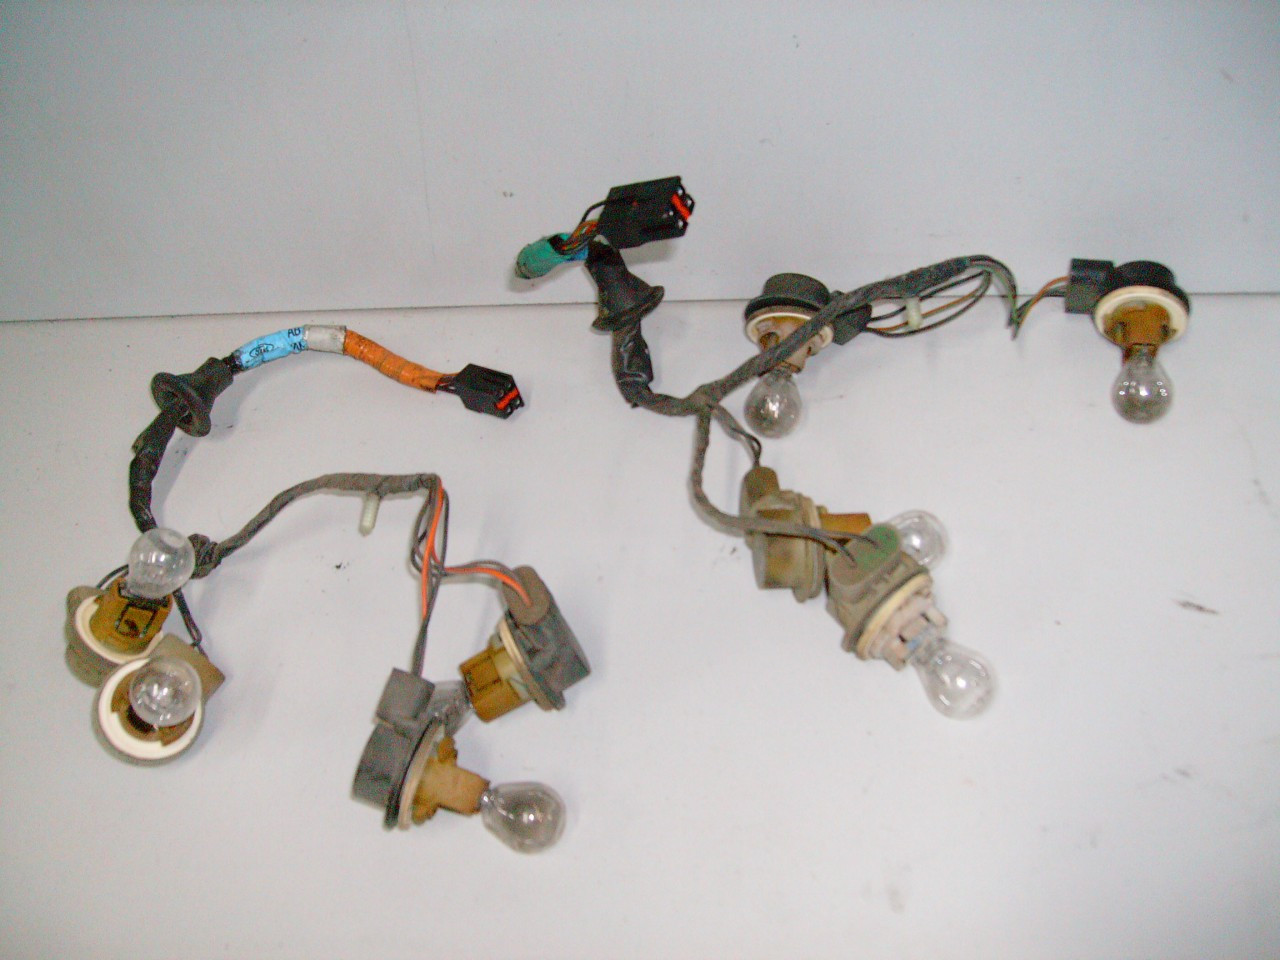 1996 1998 ford mustang rear tail light wire harness taillight. Black Bedroom Furniture Sets. Home Design Ideas